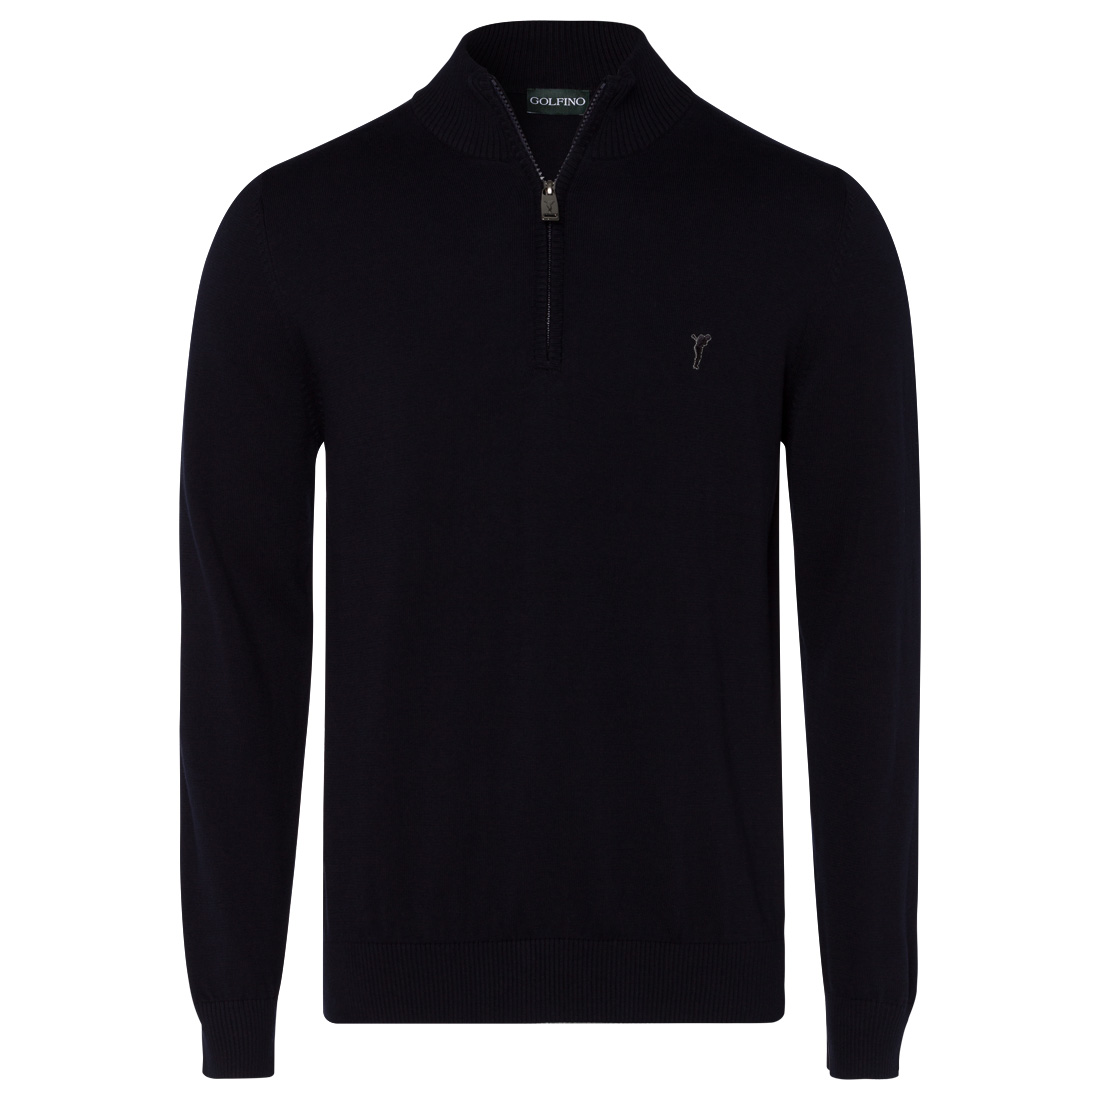 Men's golf sweater in soft cotton